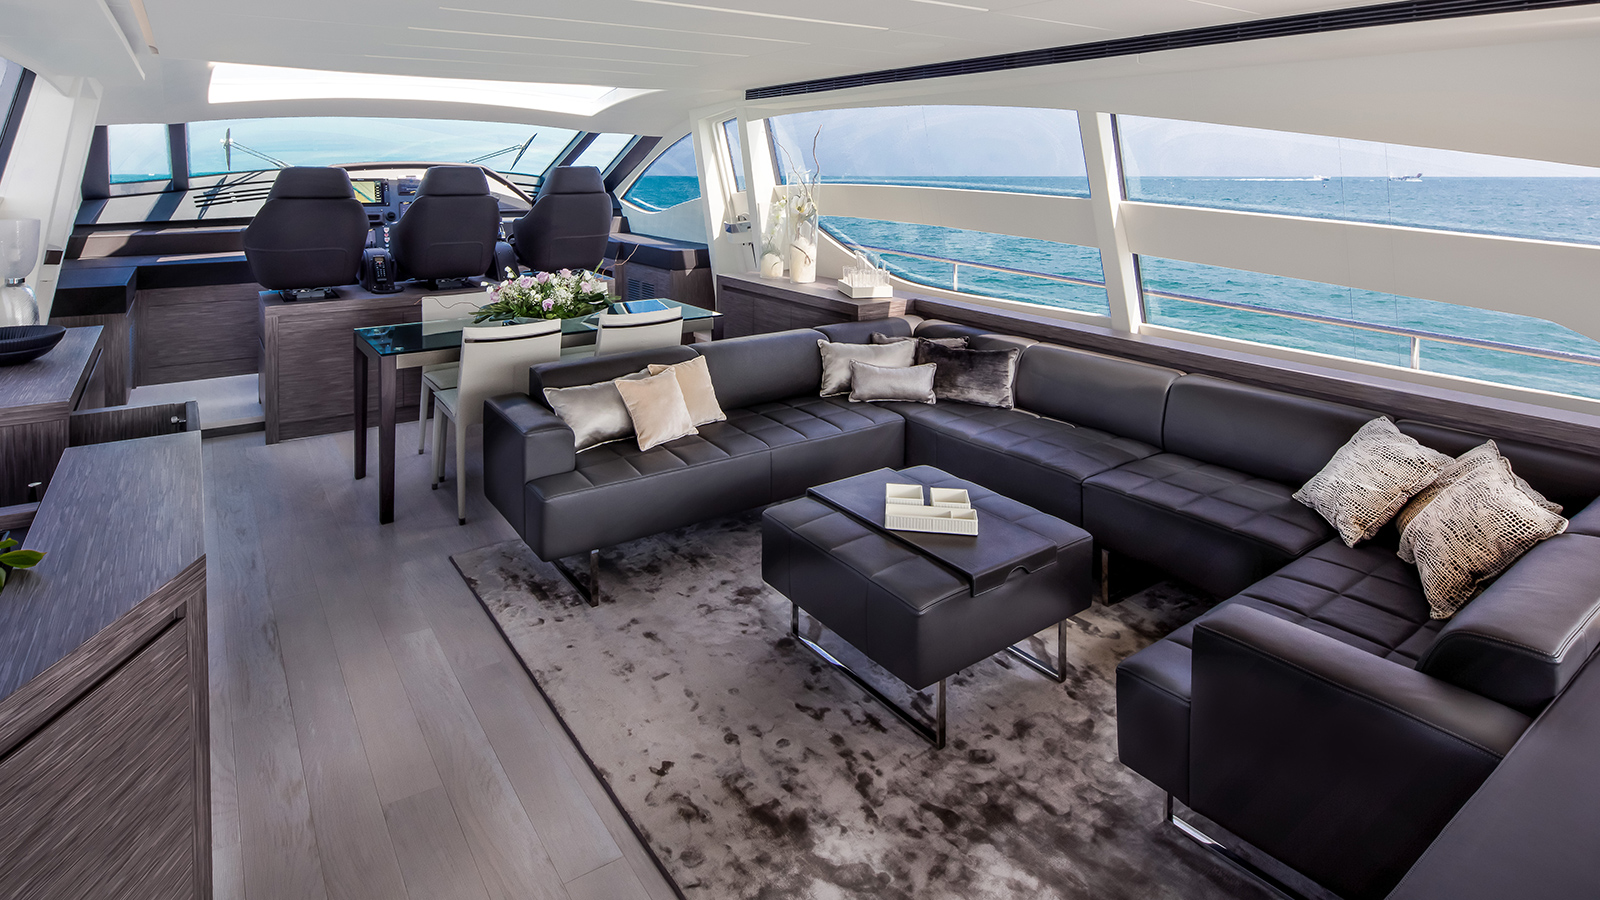 the-saloon-of-the-pershing-82-vhp-yacht